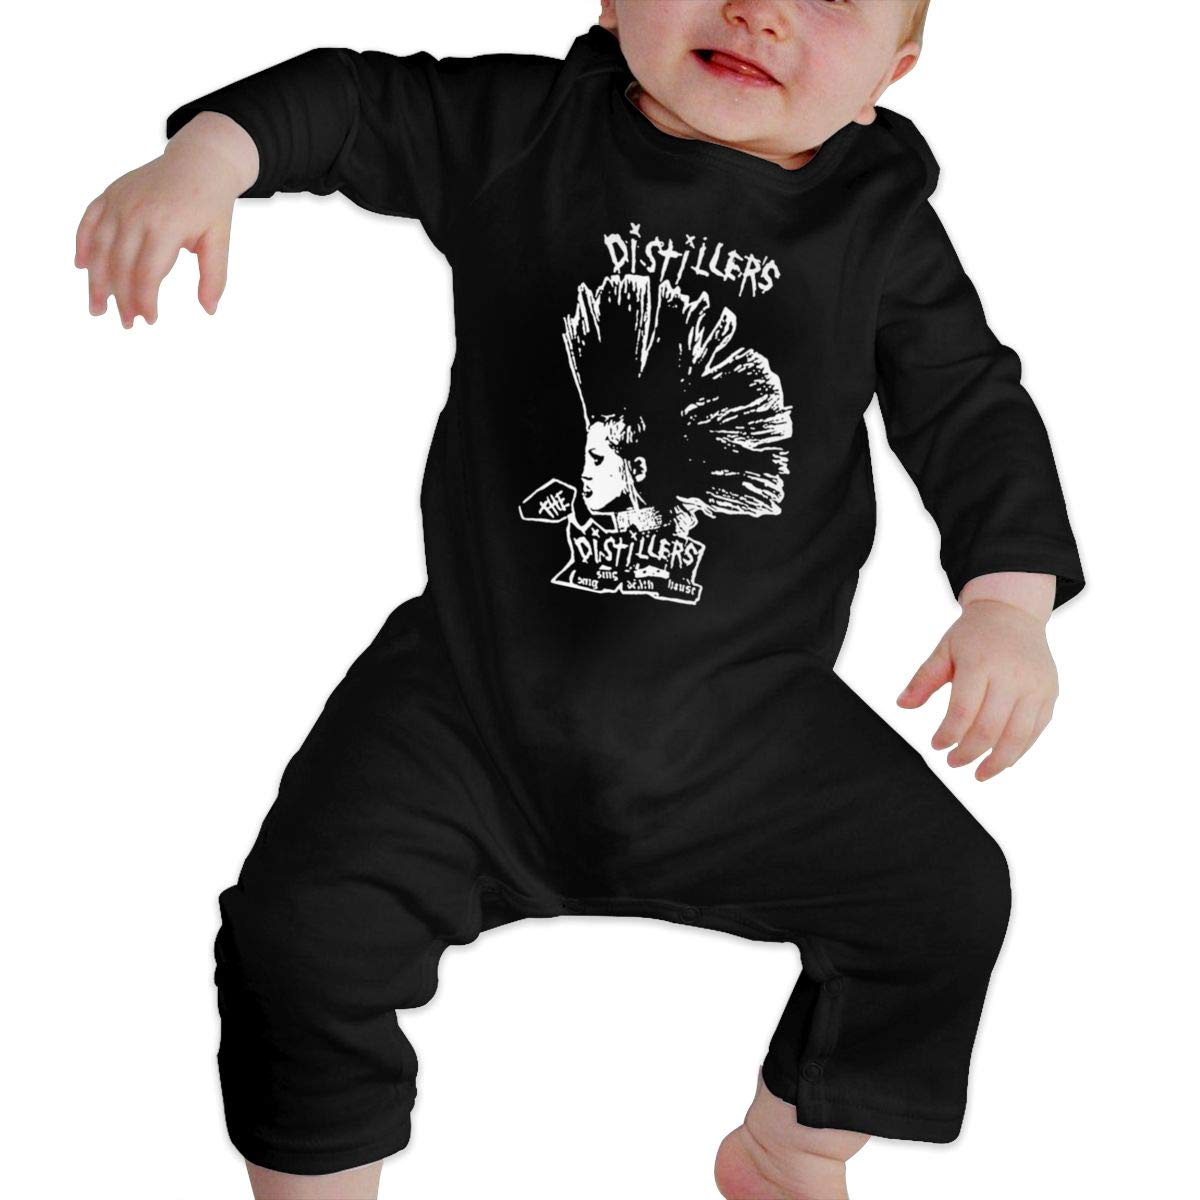 Fional Infant Long Sleeve Romper The-Distillers Newborn Babys 0-24M Organic Cotton Jumpsuit Outfit